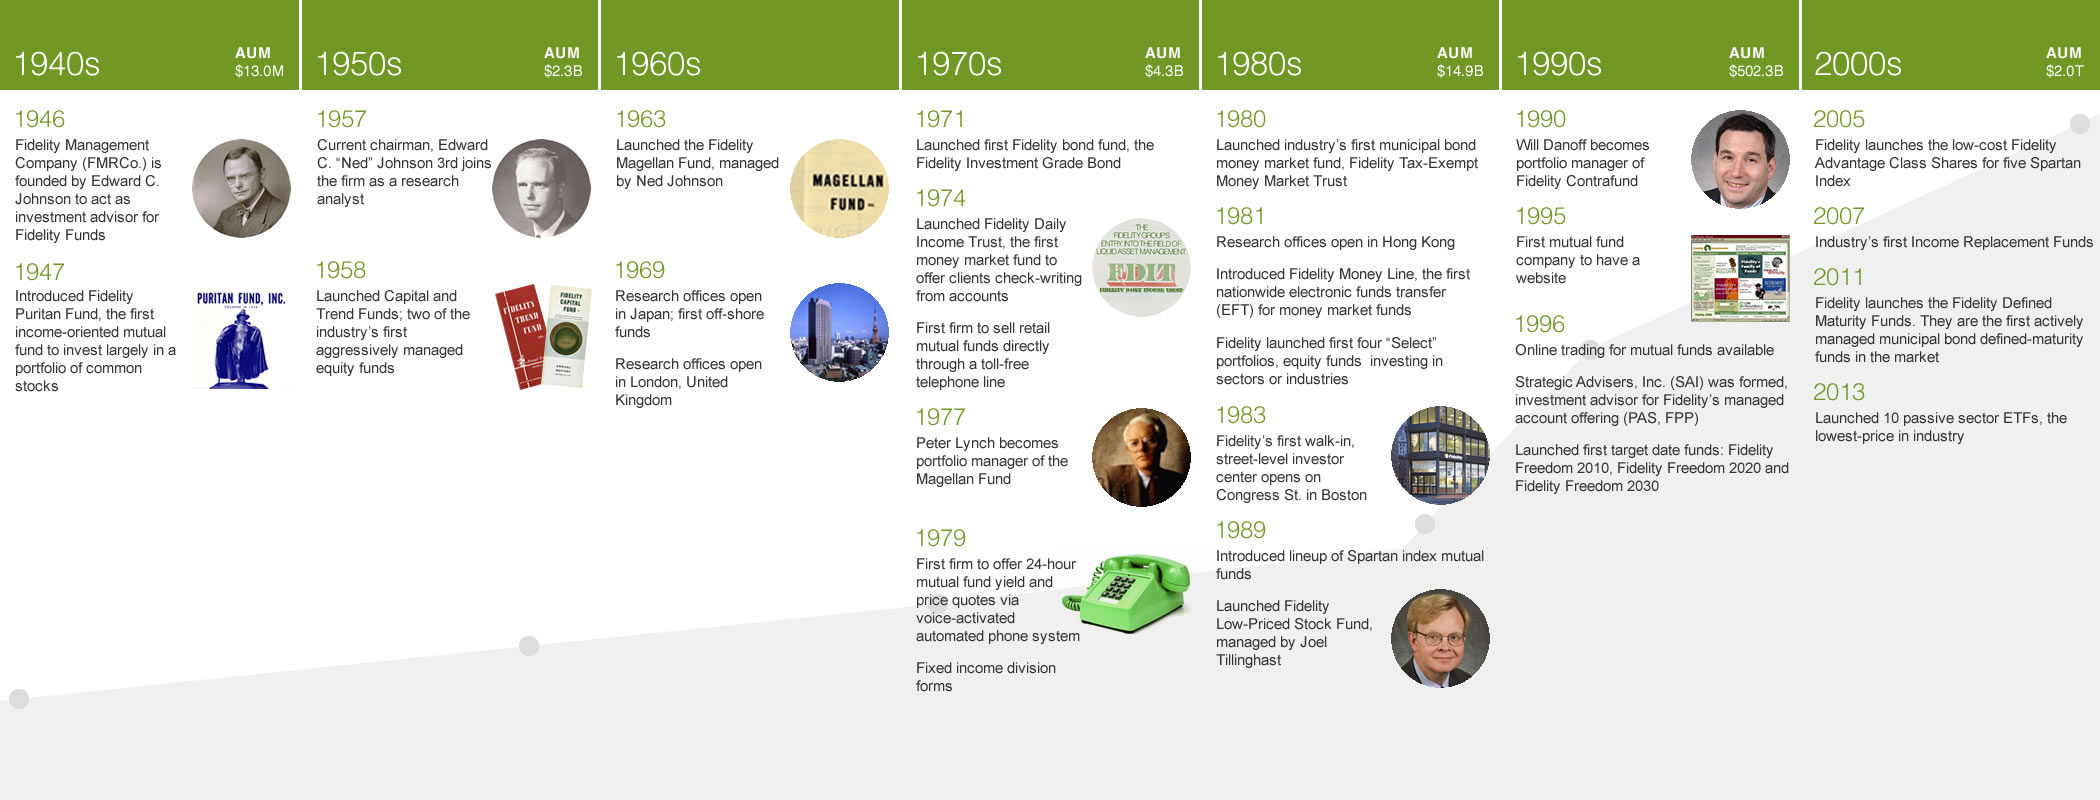 Fidelity Investments Mutual Fund Timeline